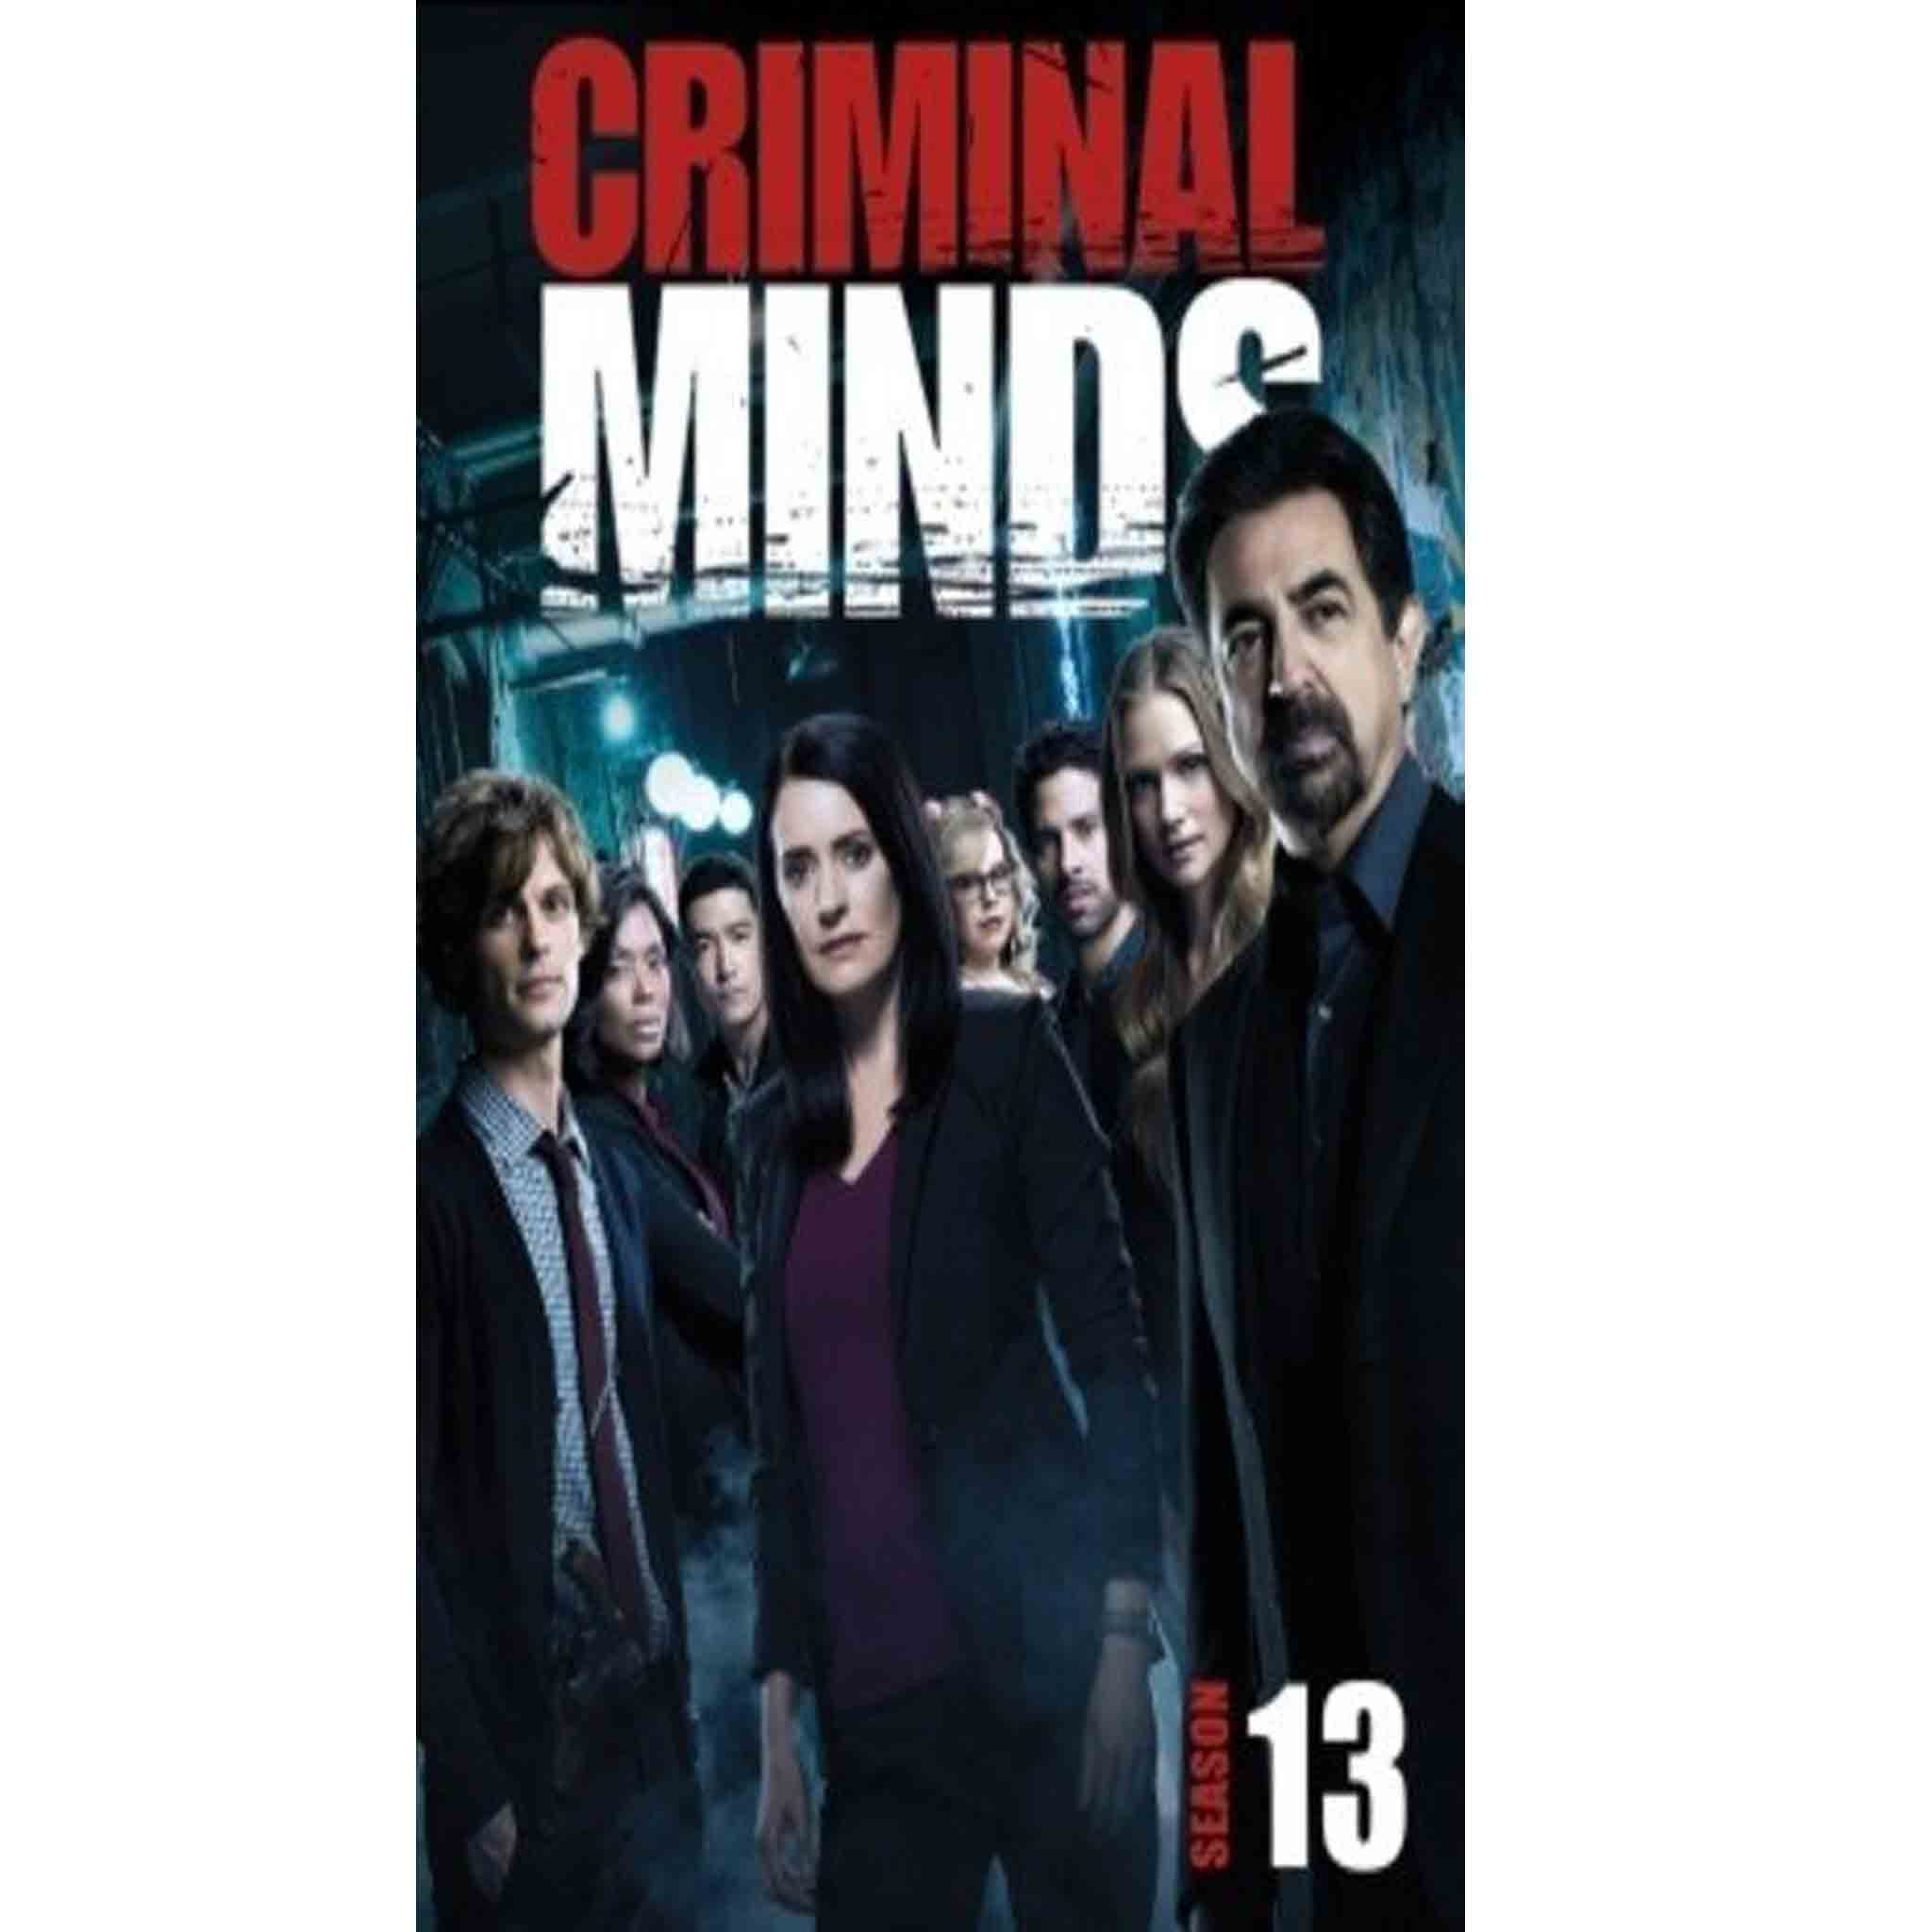 Criminal Minds Season 13 (DVD) - DVDsHQ